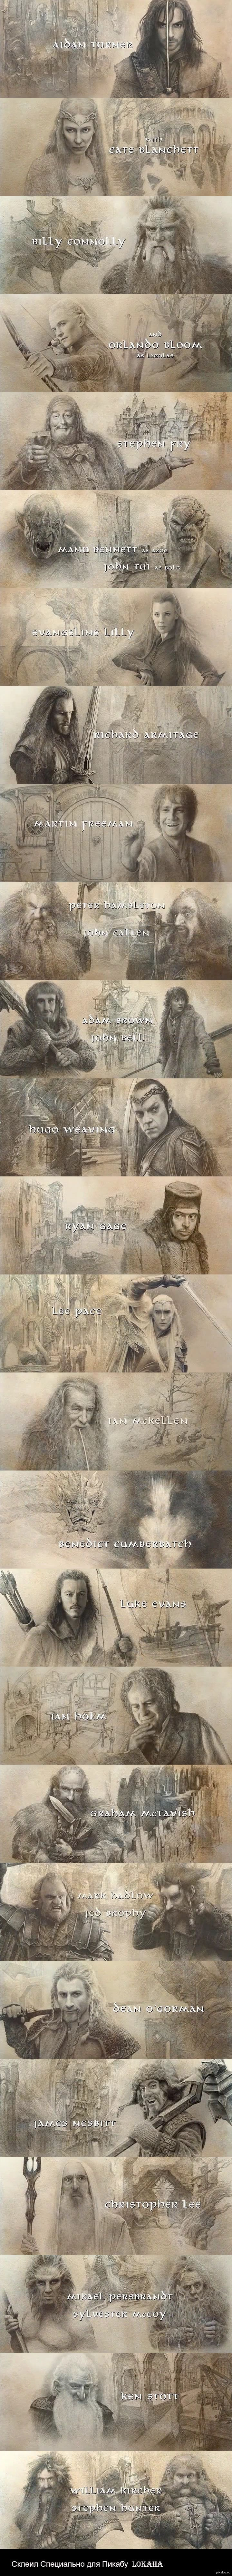 The Hobbit: The Battle of the five Armies Credits -> almost makes me tear up just looking at pictures from the credits